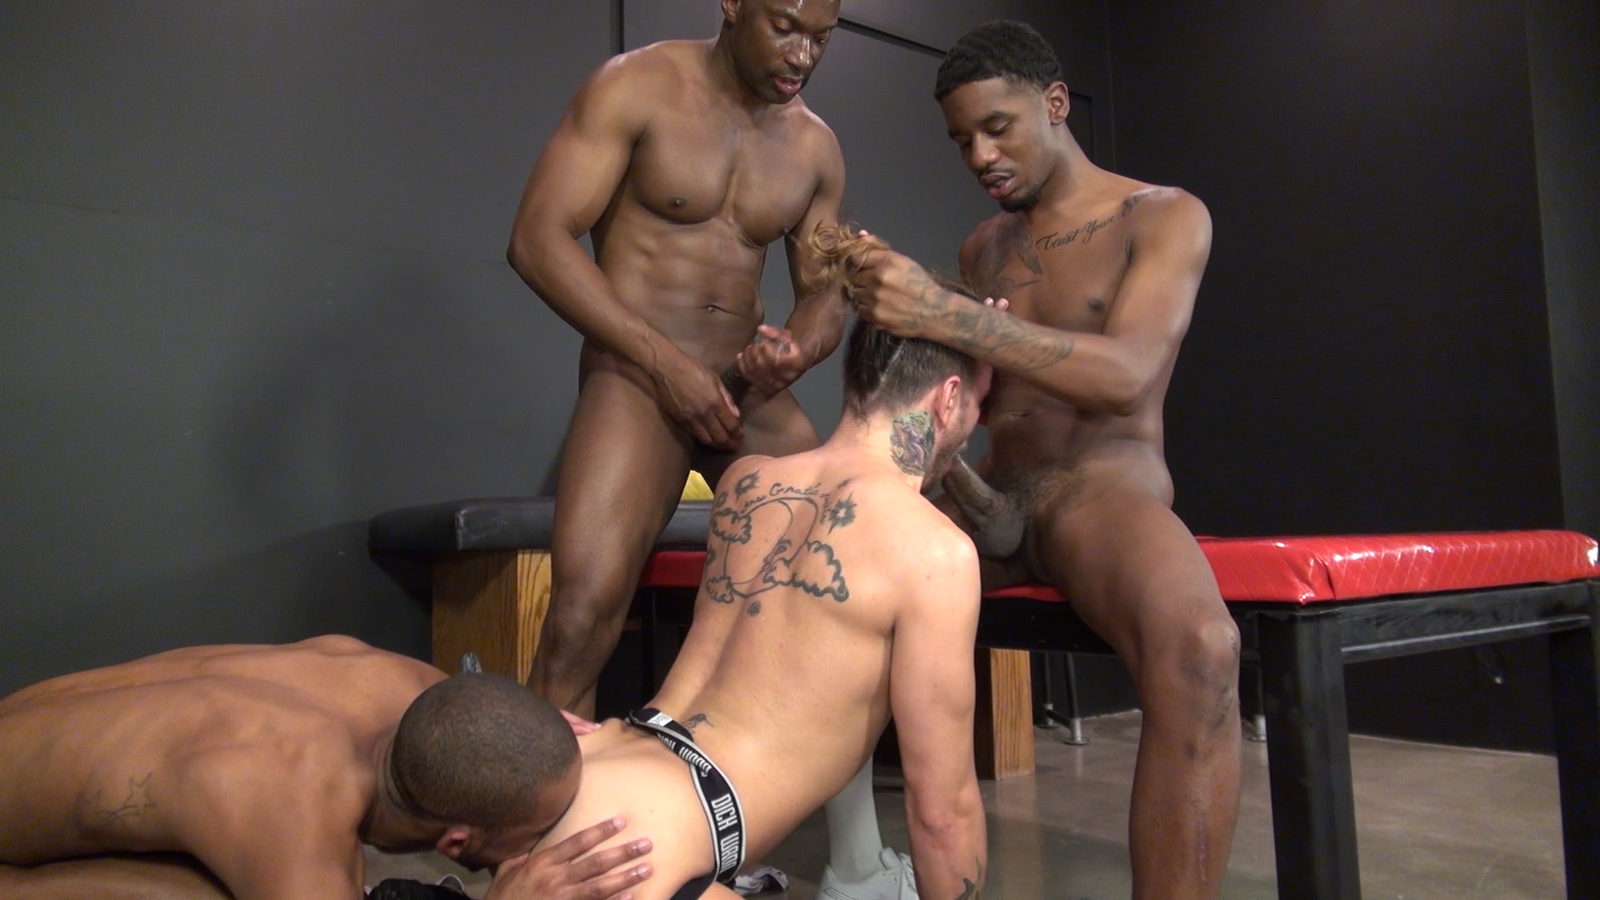 Sexy black guys fucking random objects, phatazz and pussy